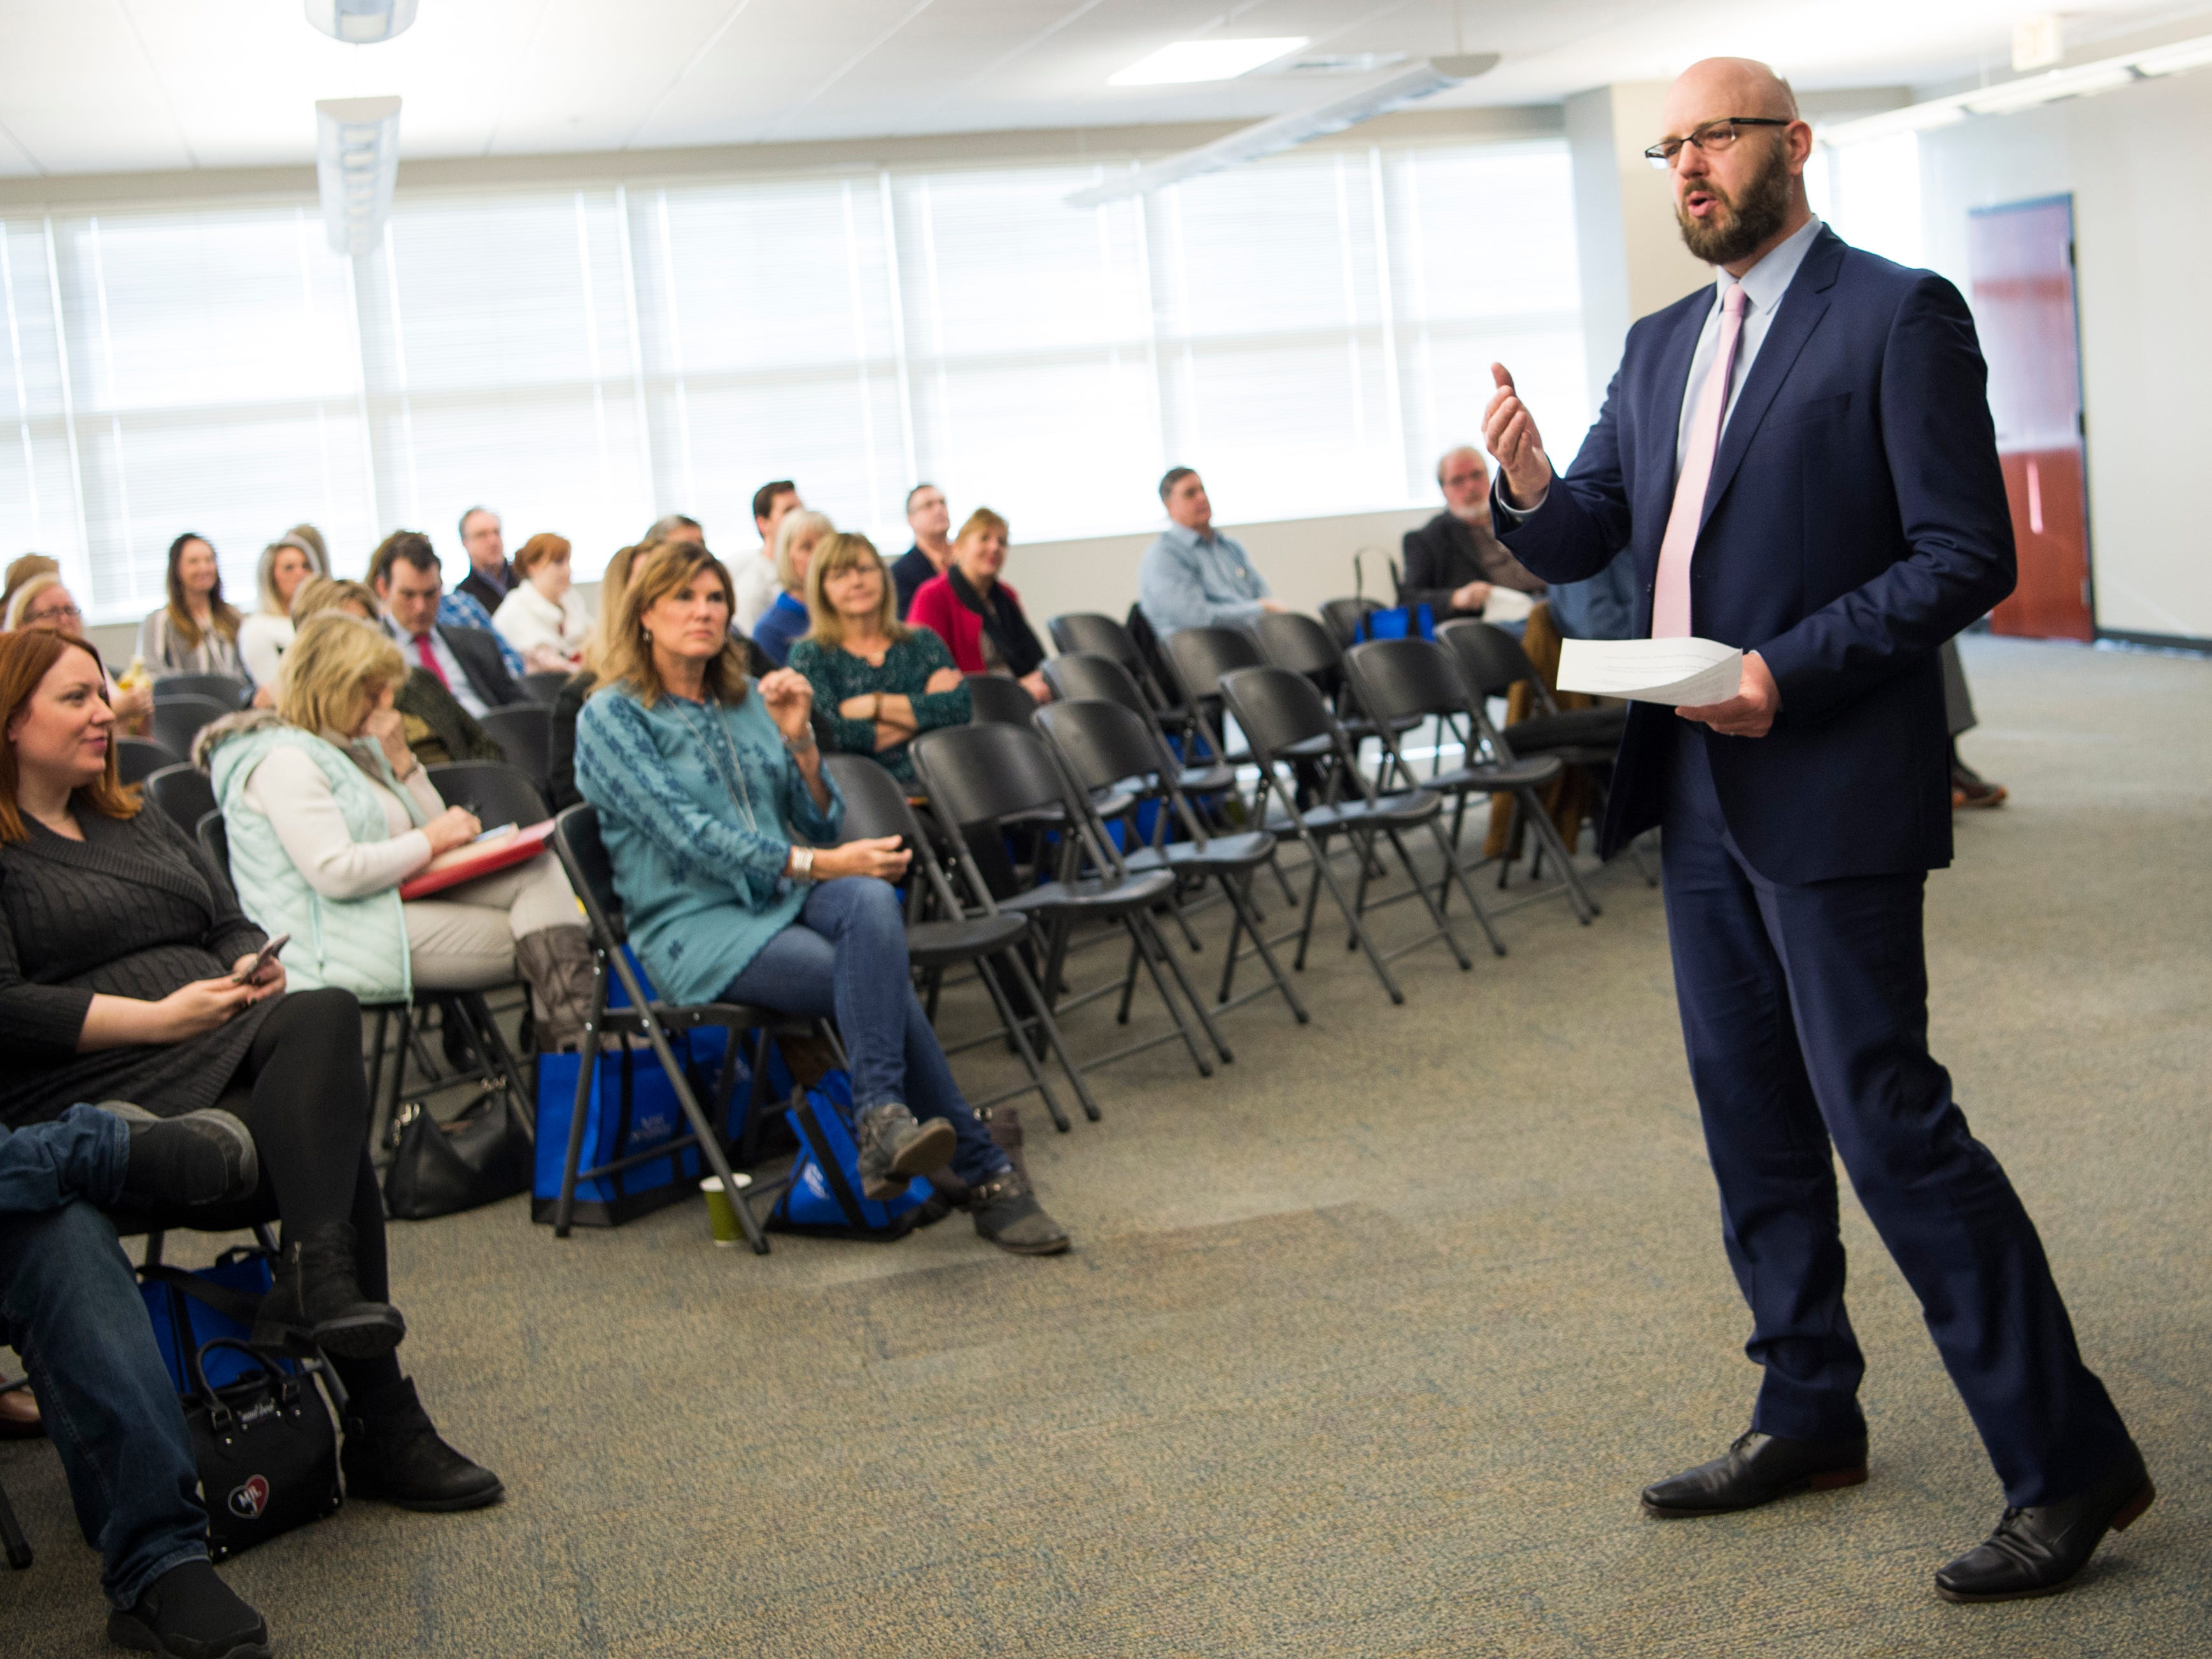 News Sentinel executive editor Joel Christopher speaks at knox.biz's Mark Schaefer book release event held at the Knoxville News Sentinel on Wednesday, February 13, 2019.